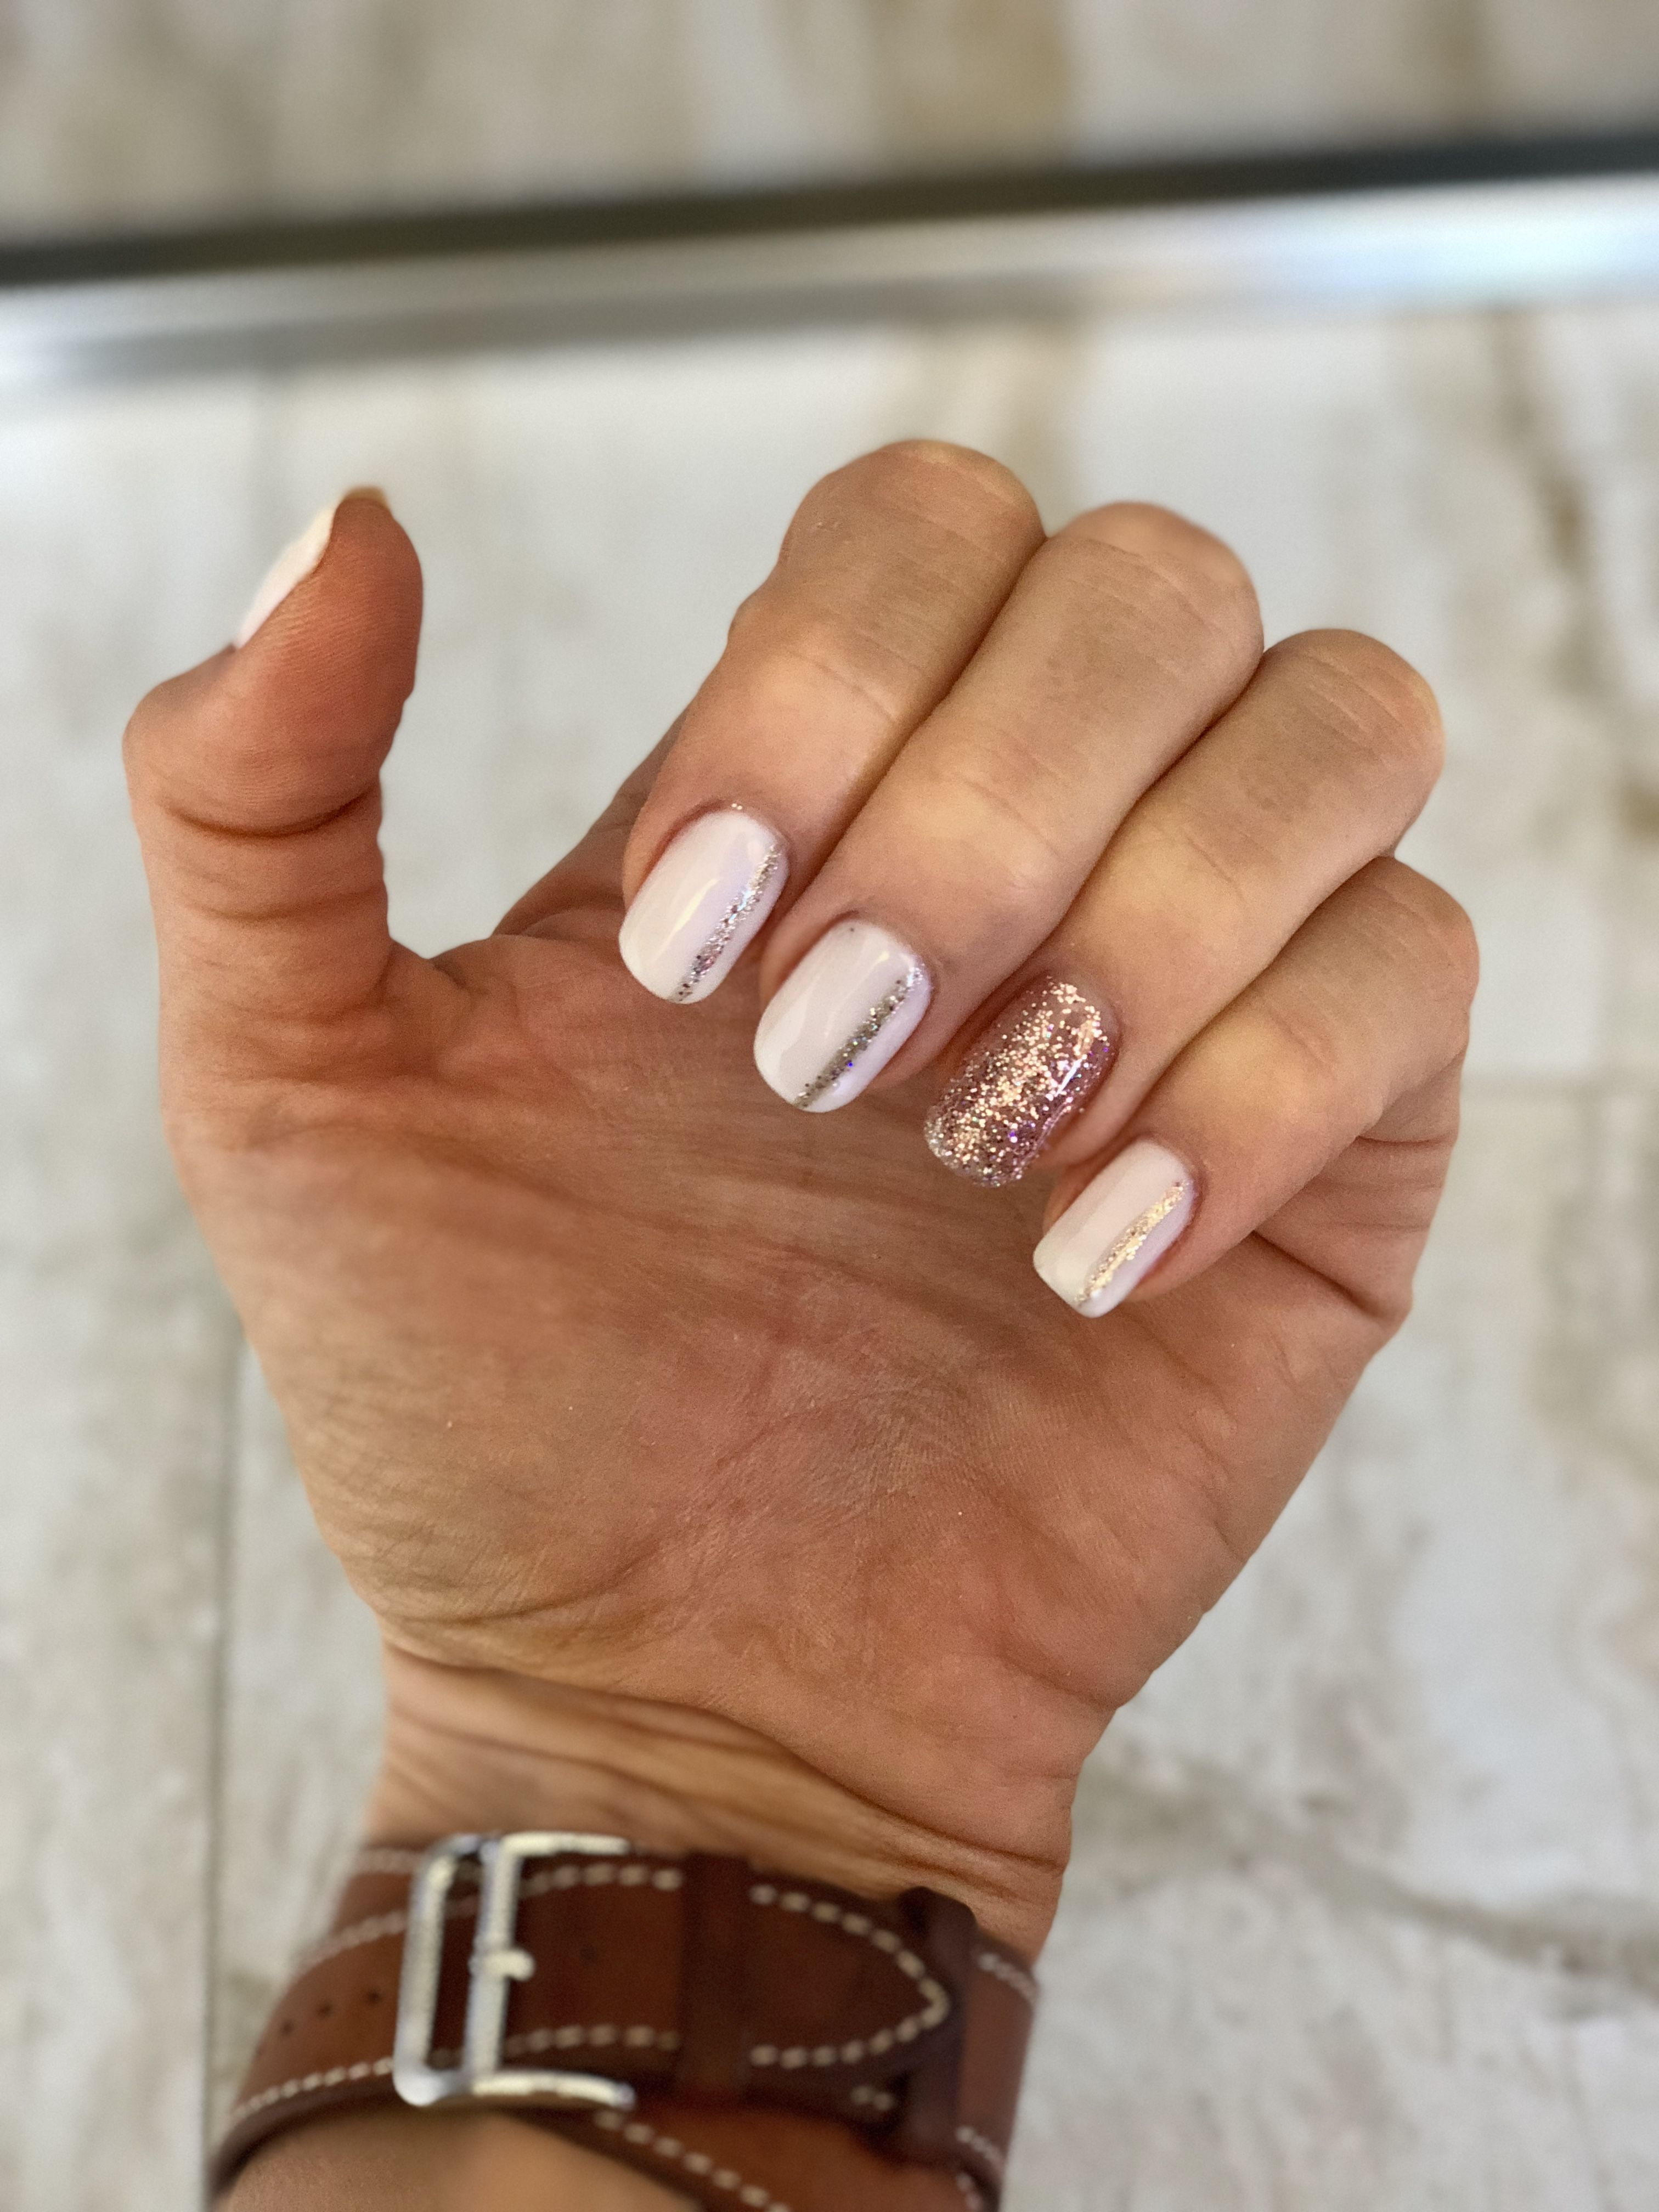 White Nails With Rose Stripe And Accent Nail Nail Art Design Misc